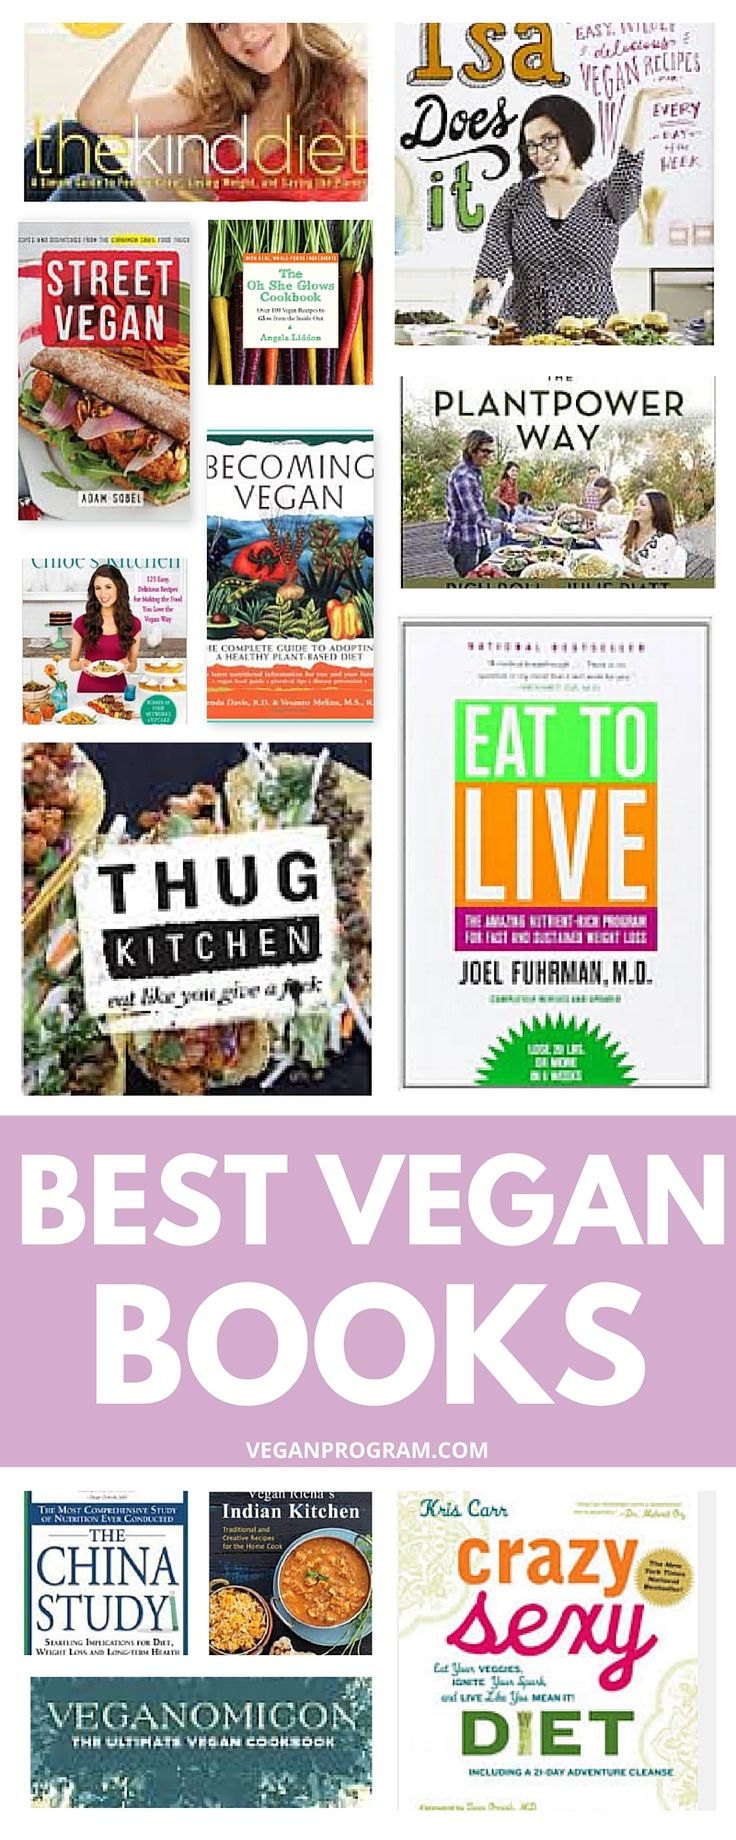 Looking for some inspiration to start being healthier? These are the best vegan books and cookbooks that make going vegan easy and fun. Are you ready to get healthier and feel better? | veganprogram.com